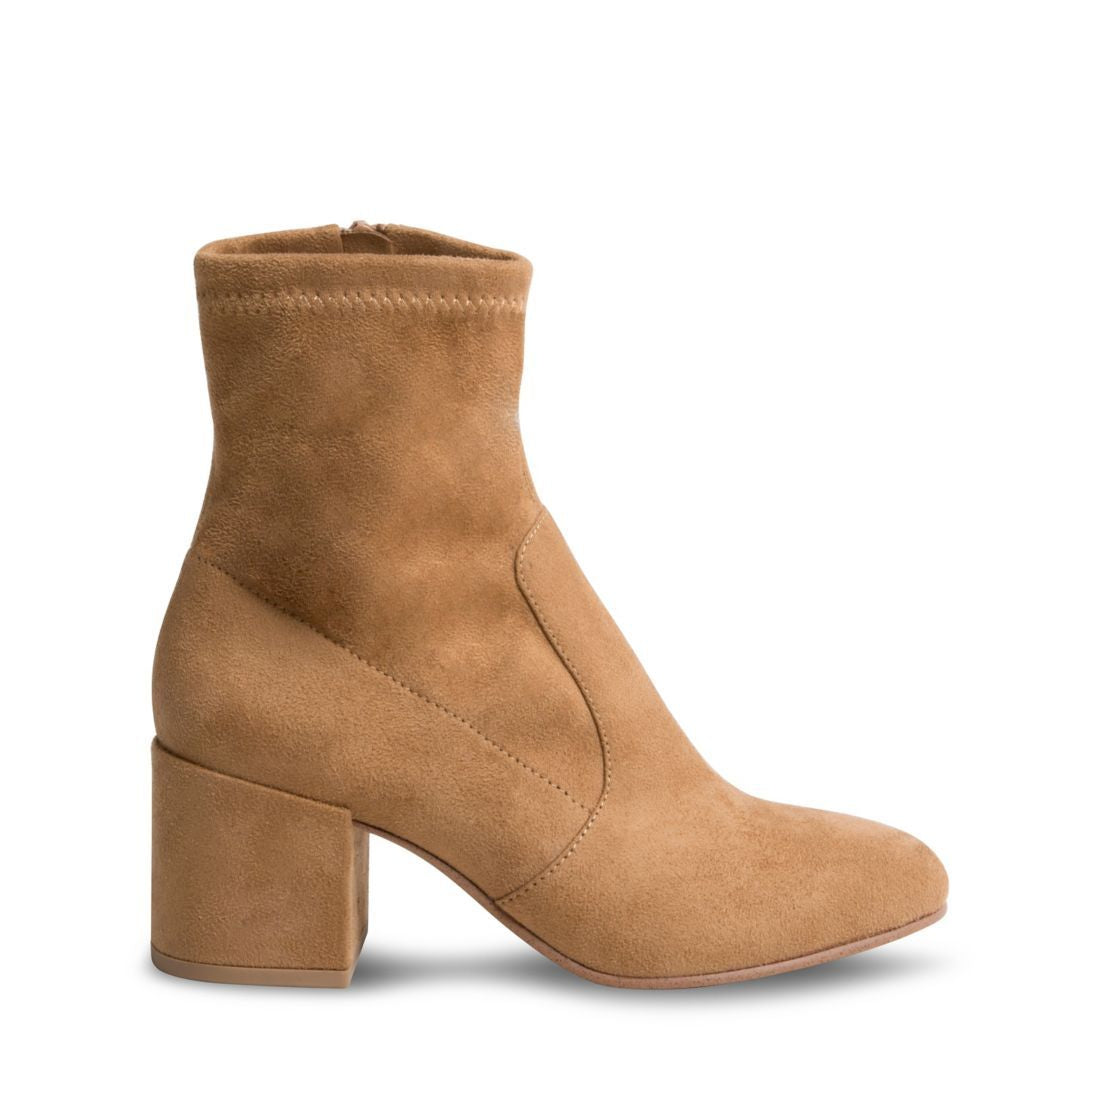 0aefce3b4ee Booties   Ankle Boots